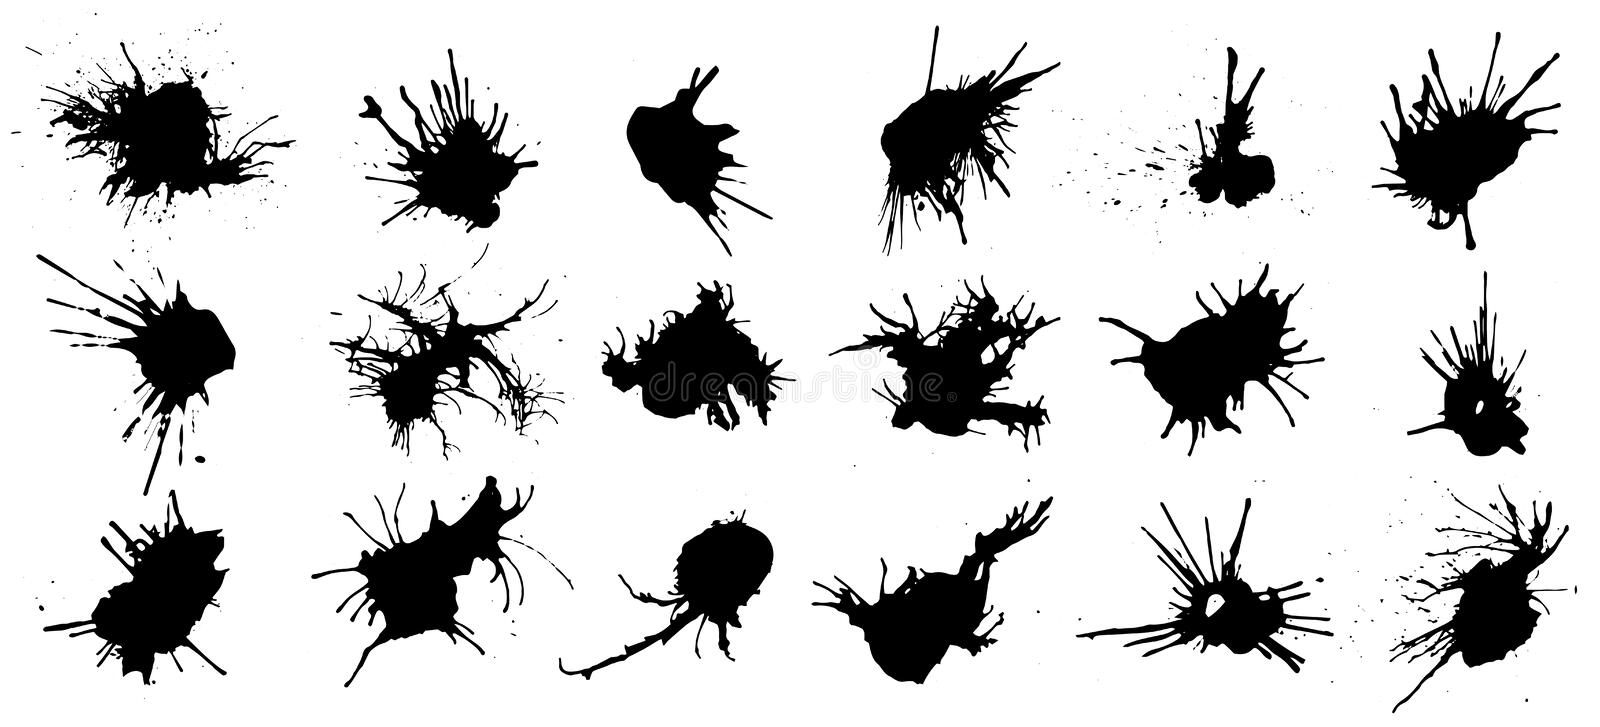 Set of black ink splashes and drops. Different handdrawn spray design elements. Blobs and spatters. Isolated vector. Illustration royalty free illustration